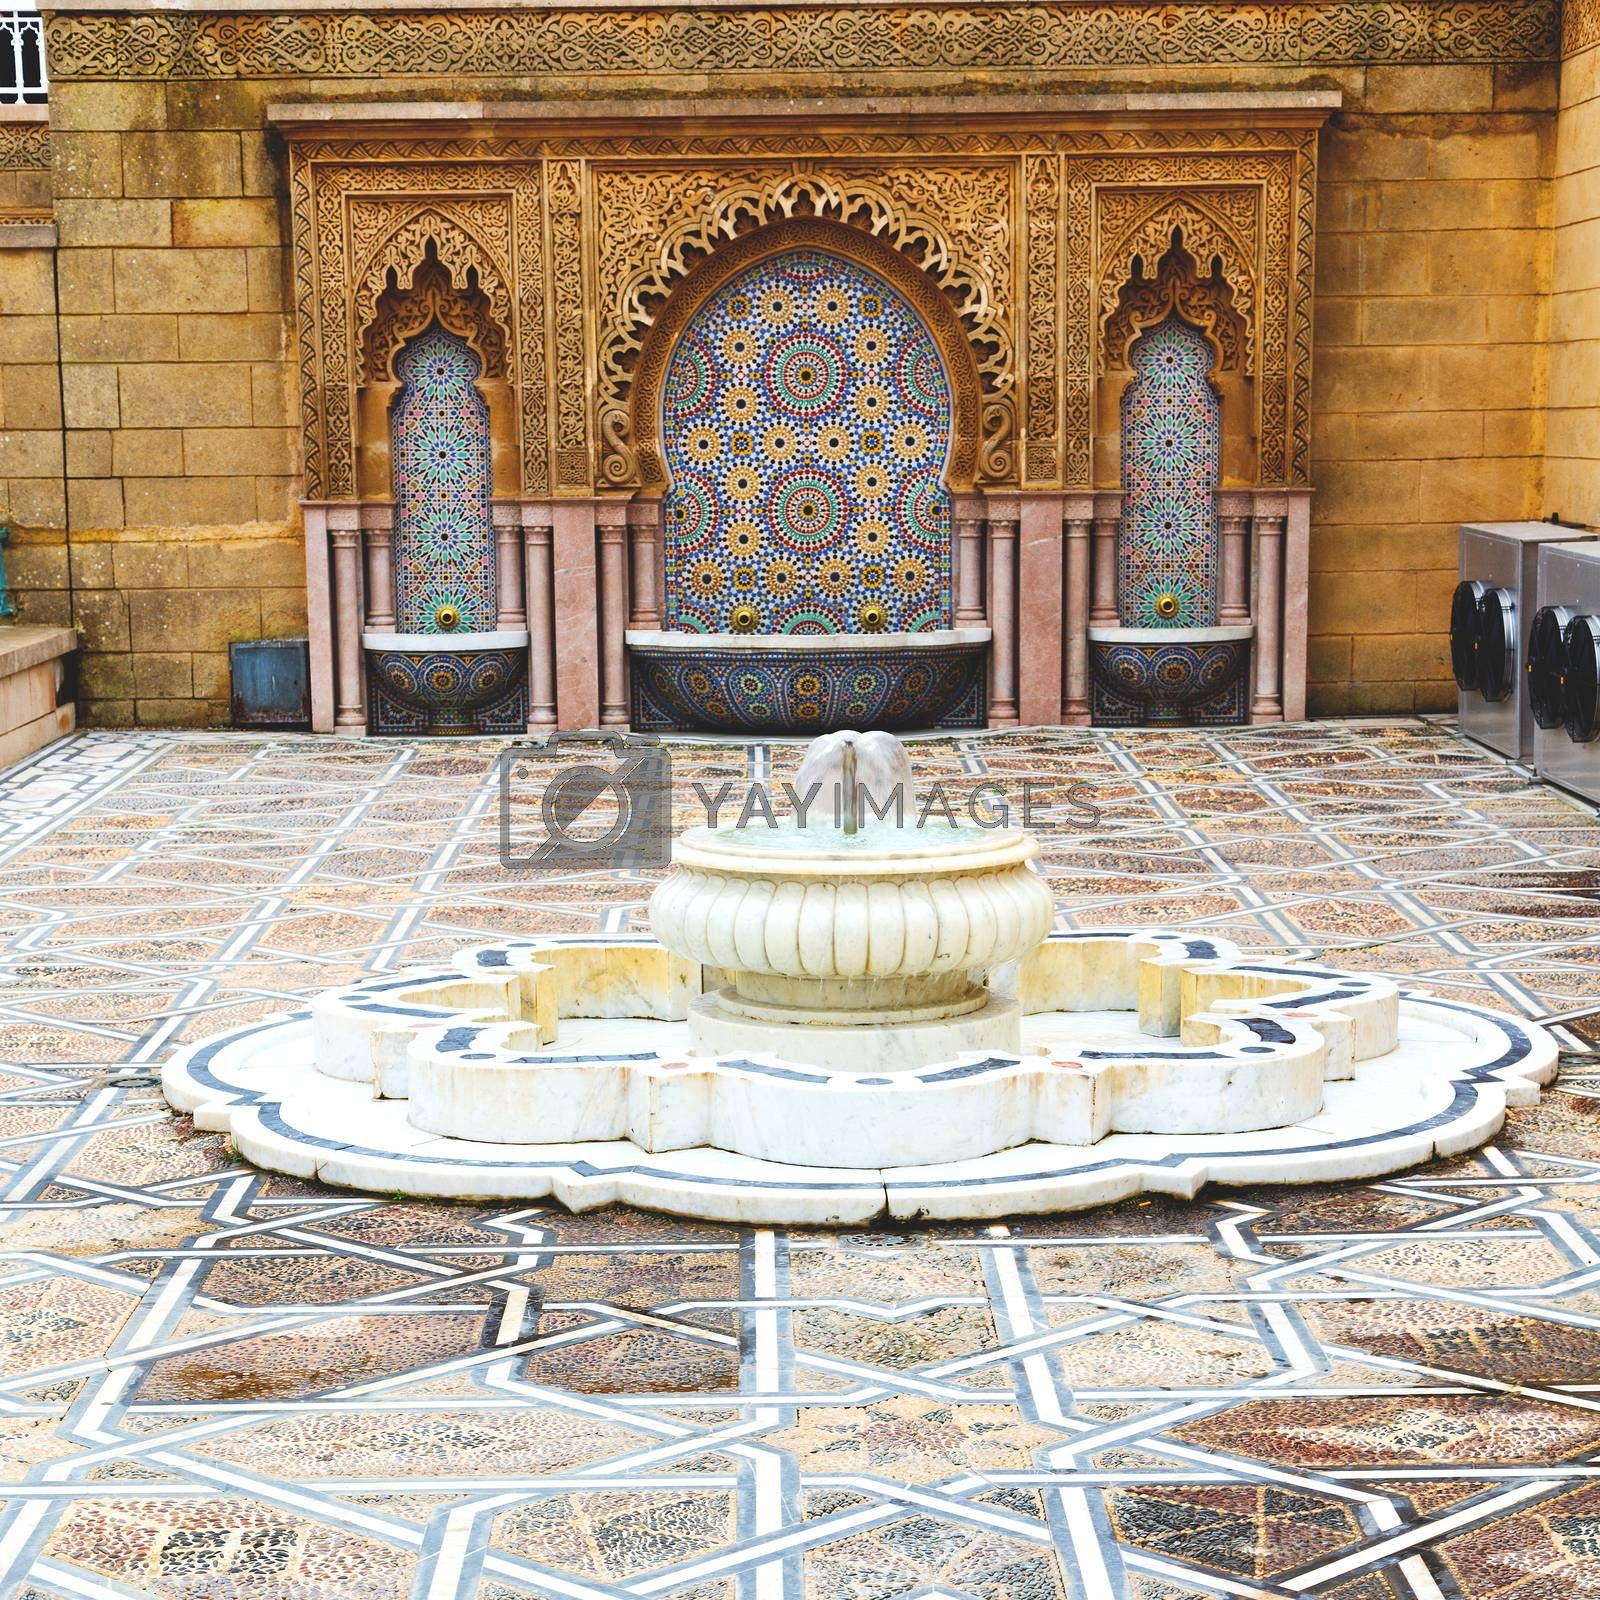 fountain in morocco africa old antique construction  mousque pal by lkpro